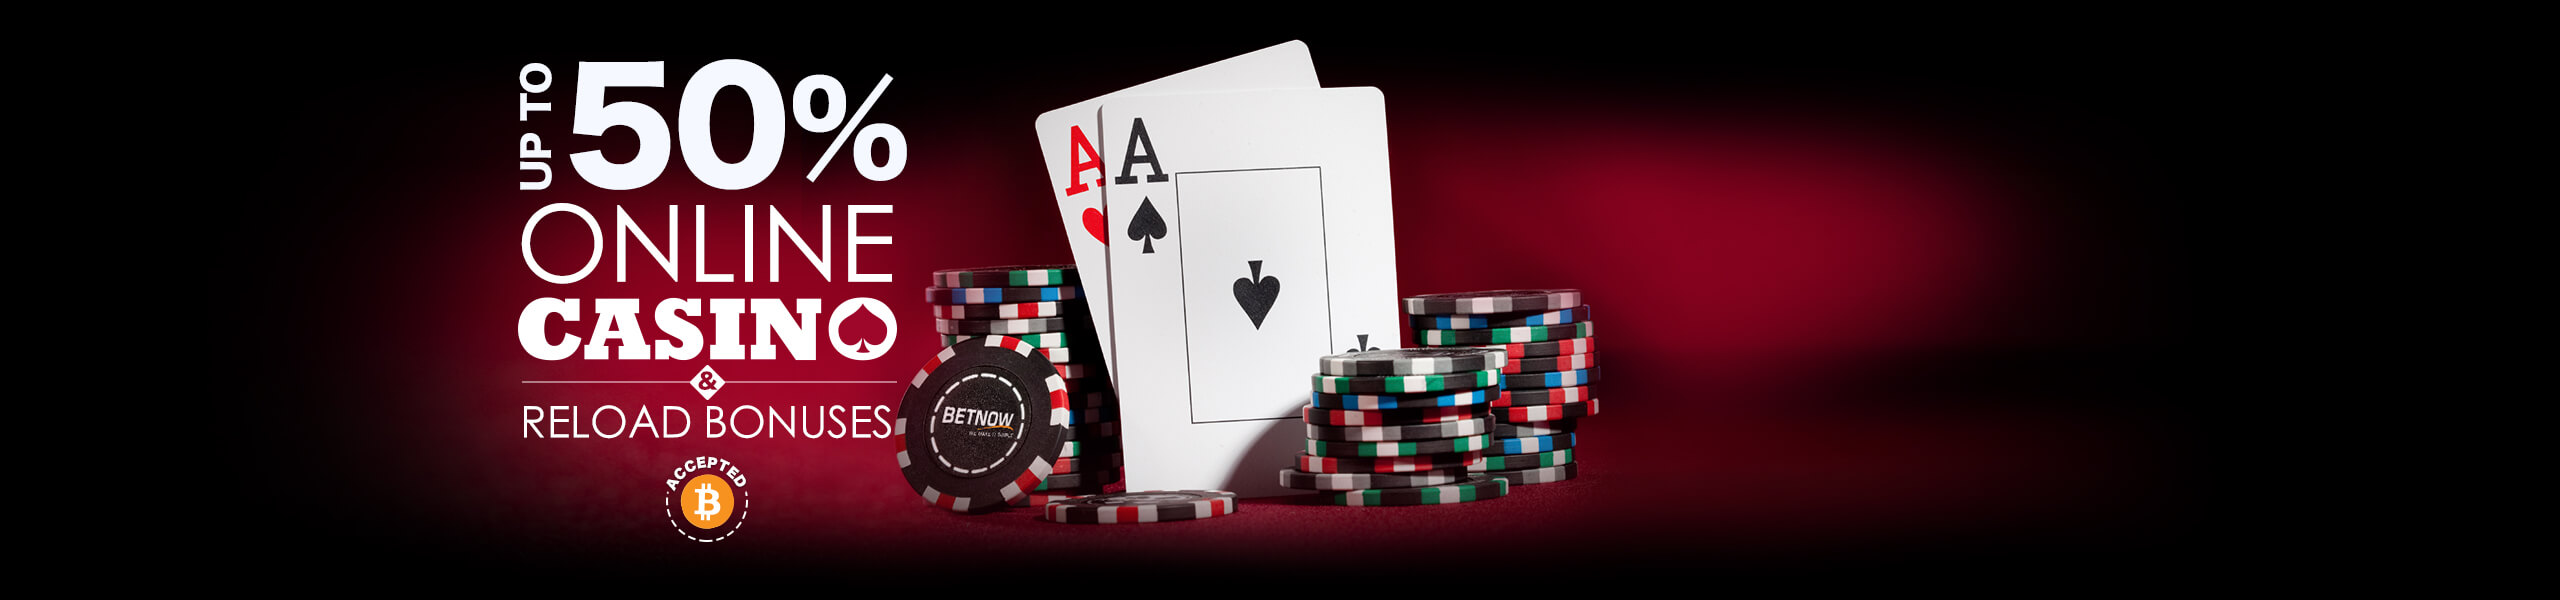 australian online casino real money 2019